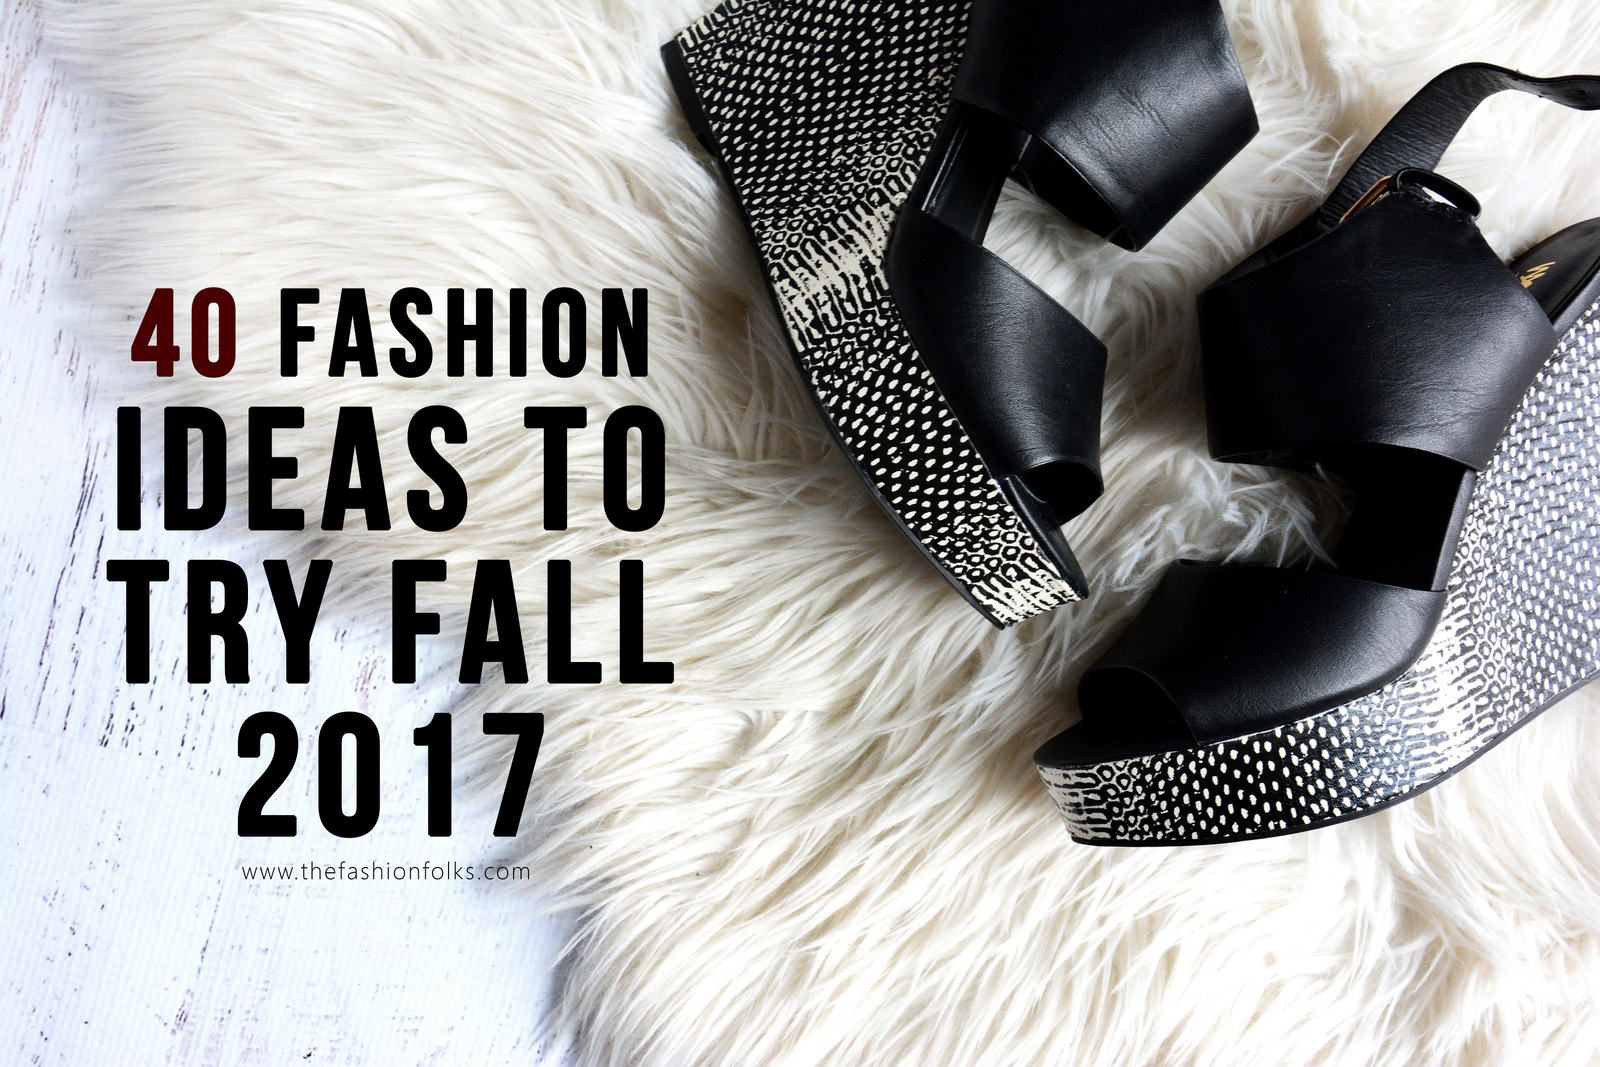 40 Style Ideas To Try For Fall 2017 - The Fashion Folks